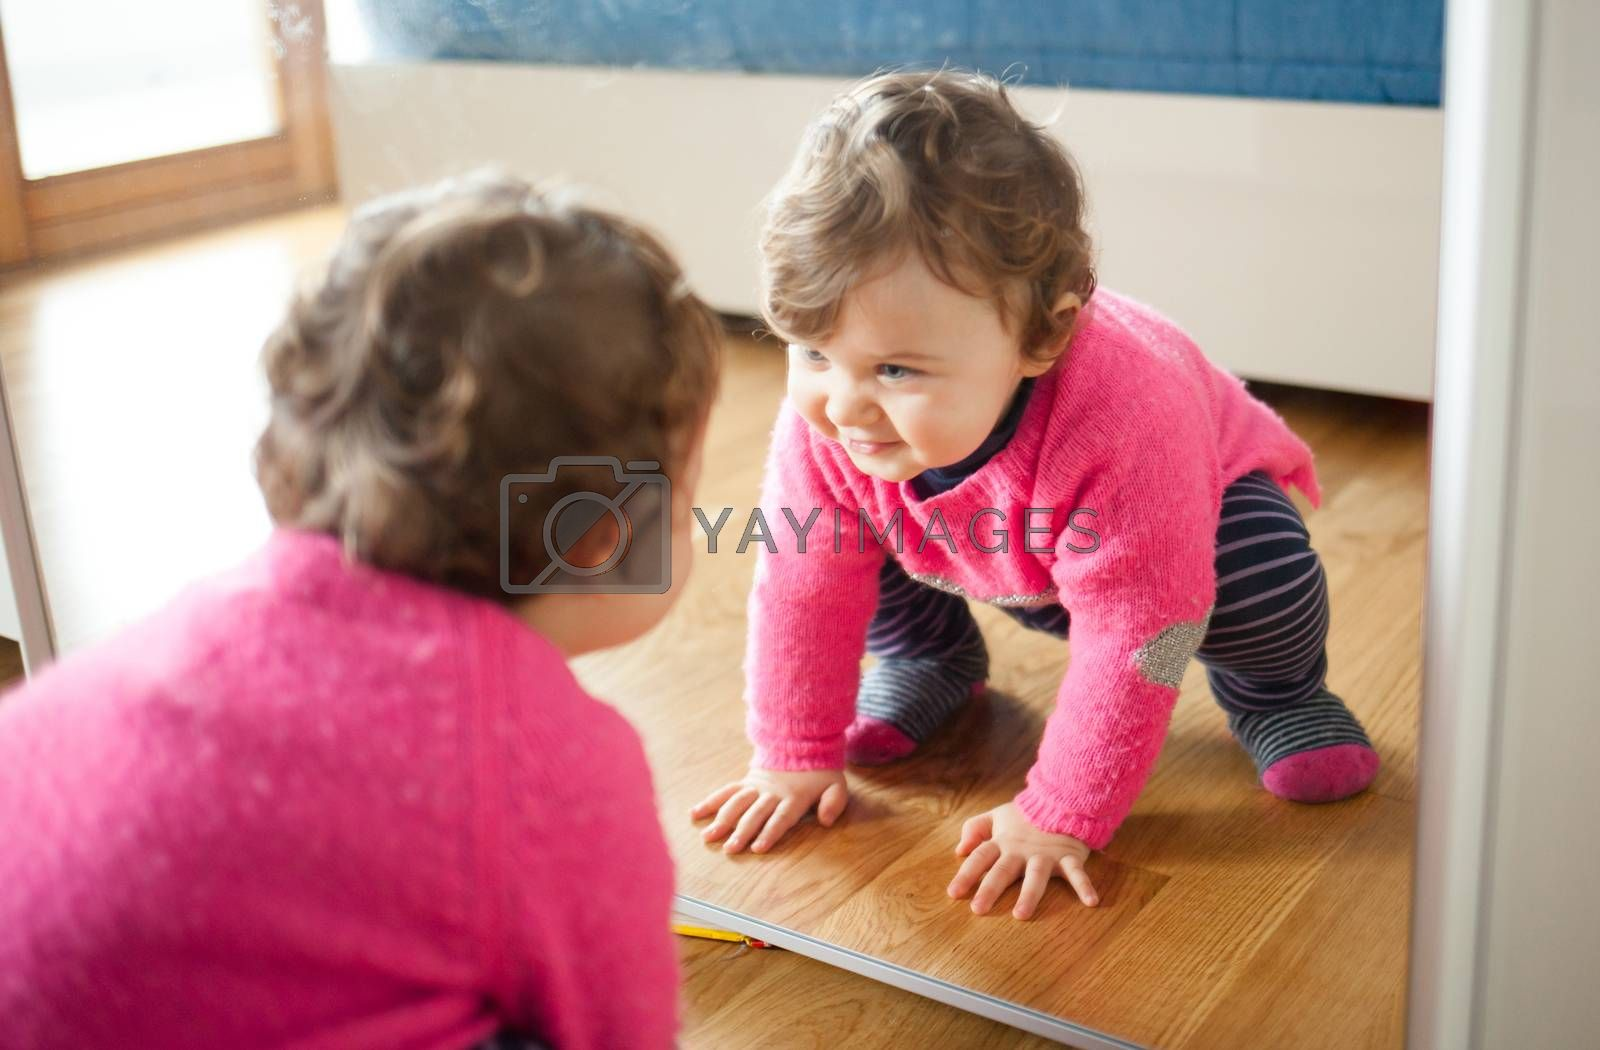 Toddler baby girl playing with mirror in the bedroom by Antonio_Gravante